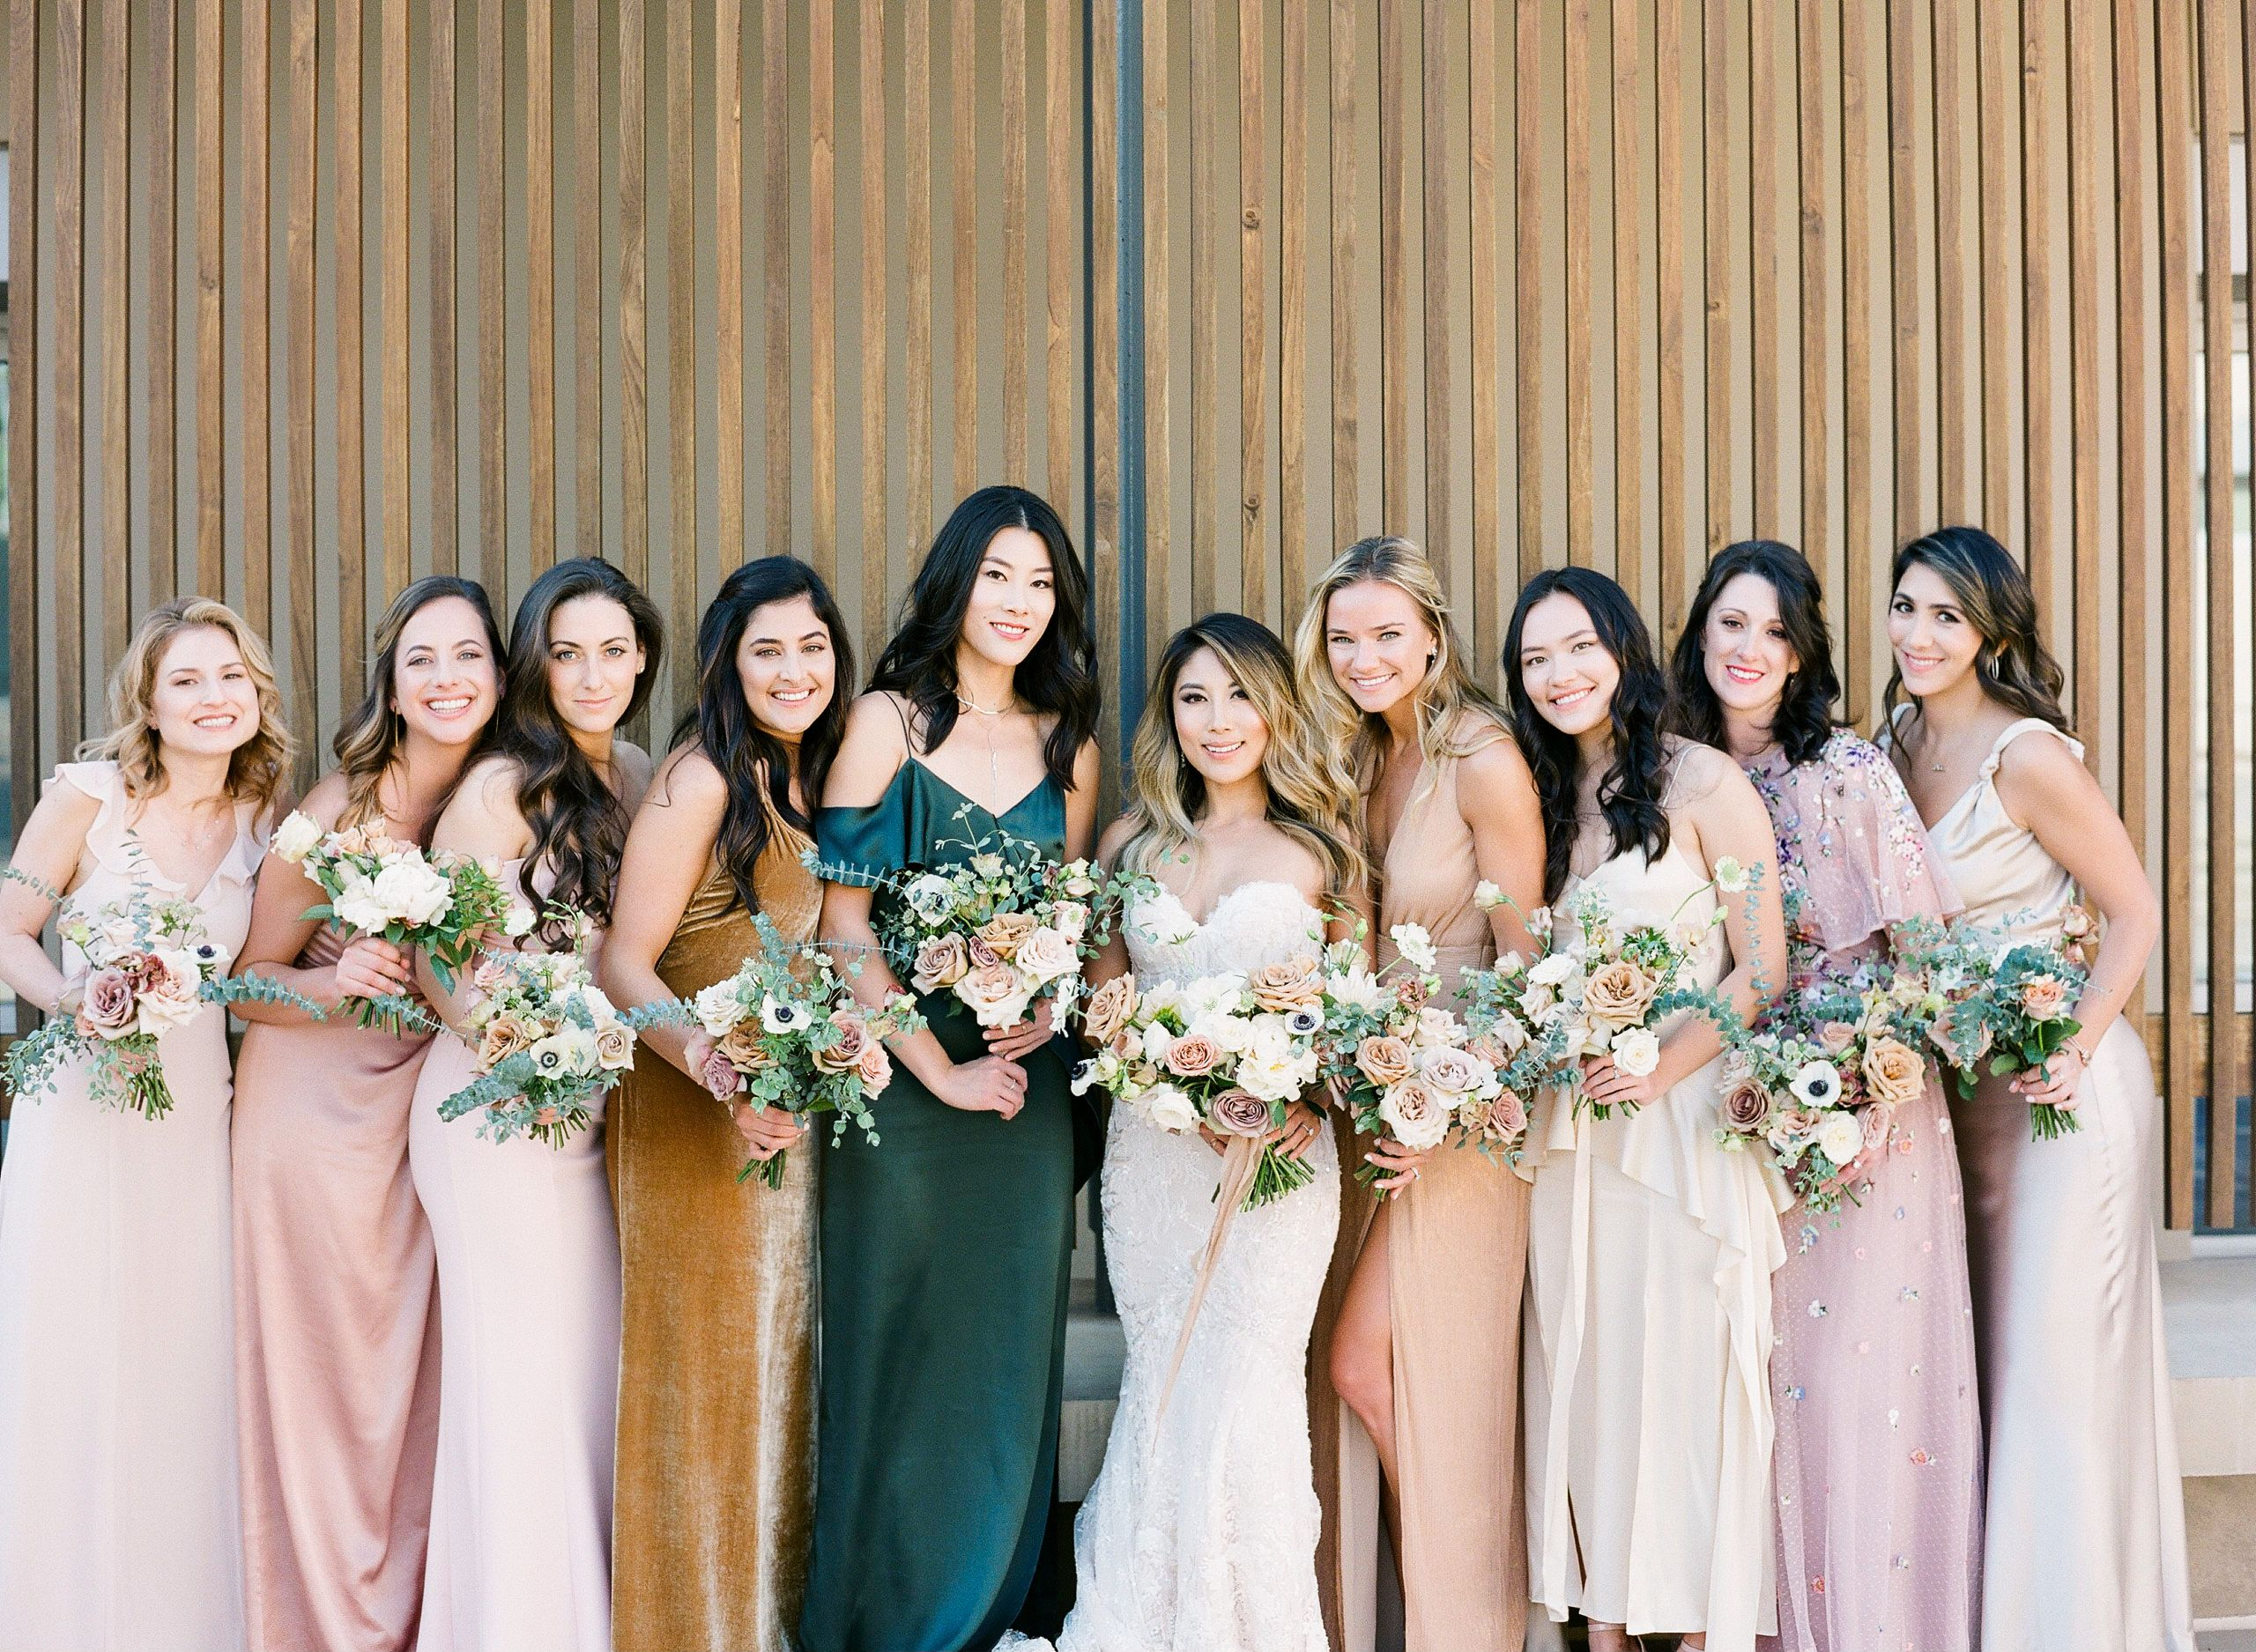 Obsessed With These Bridesmaids Dresses All Different Yet Blend So Well Together Unique Bridesmaids Gorgeous Wedding Dress Bridesmaid Colors Tan Bridesmaids